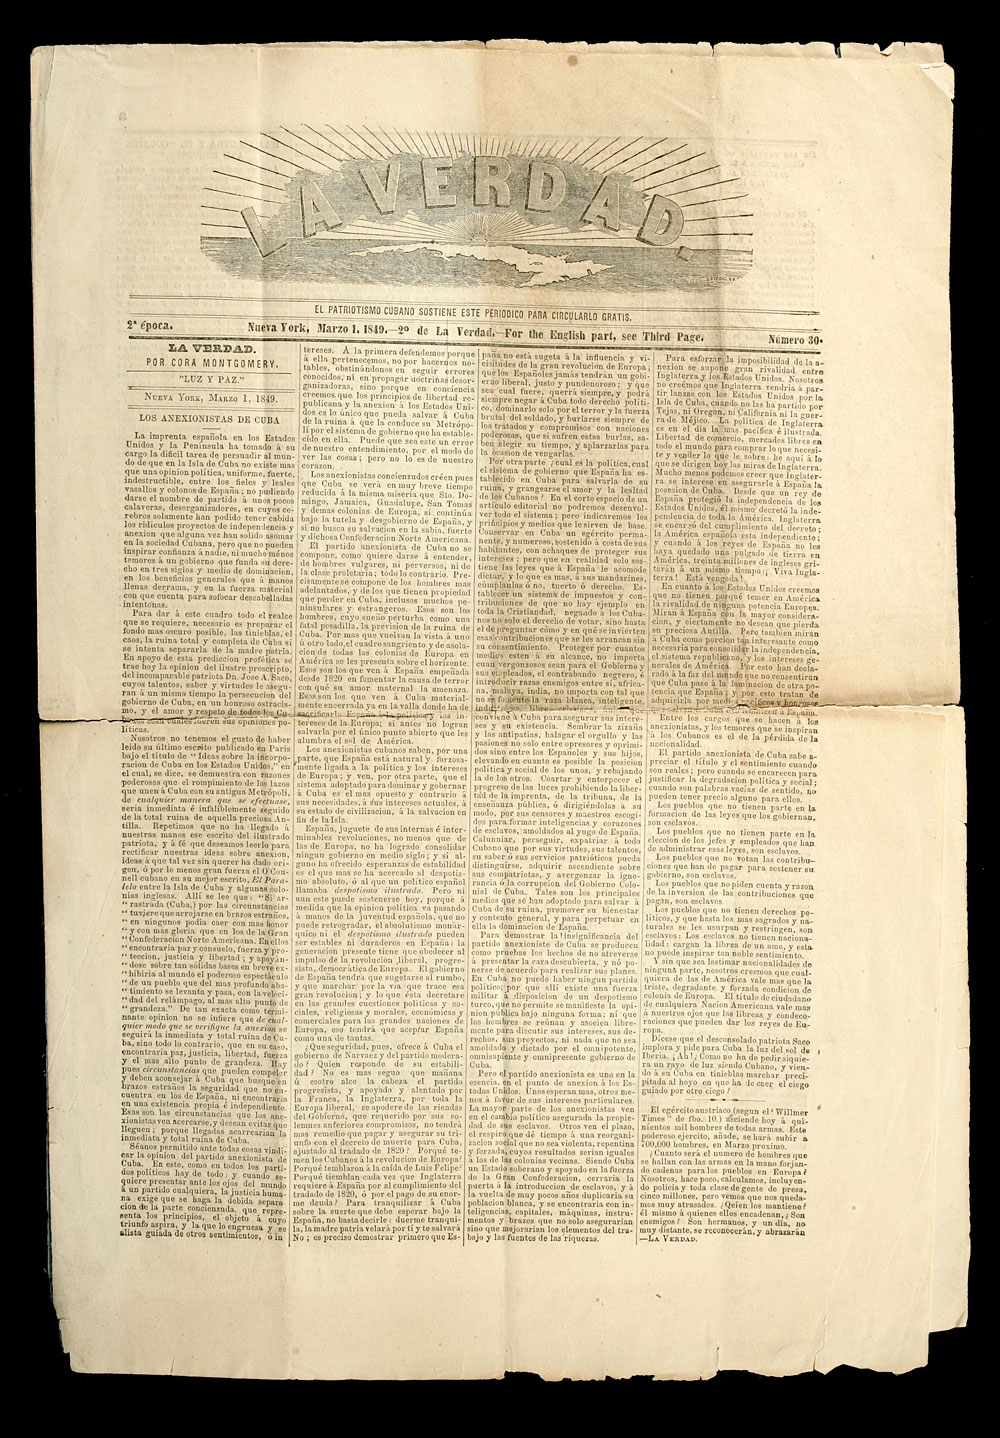 La Verdad (184853), March 1, 1849. Reproduction. New-York Historical Society.